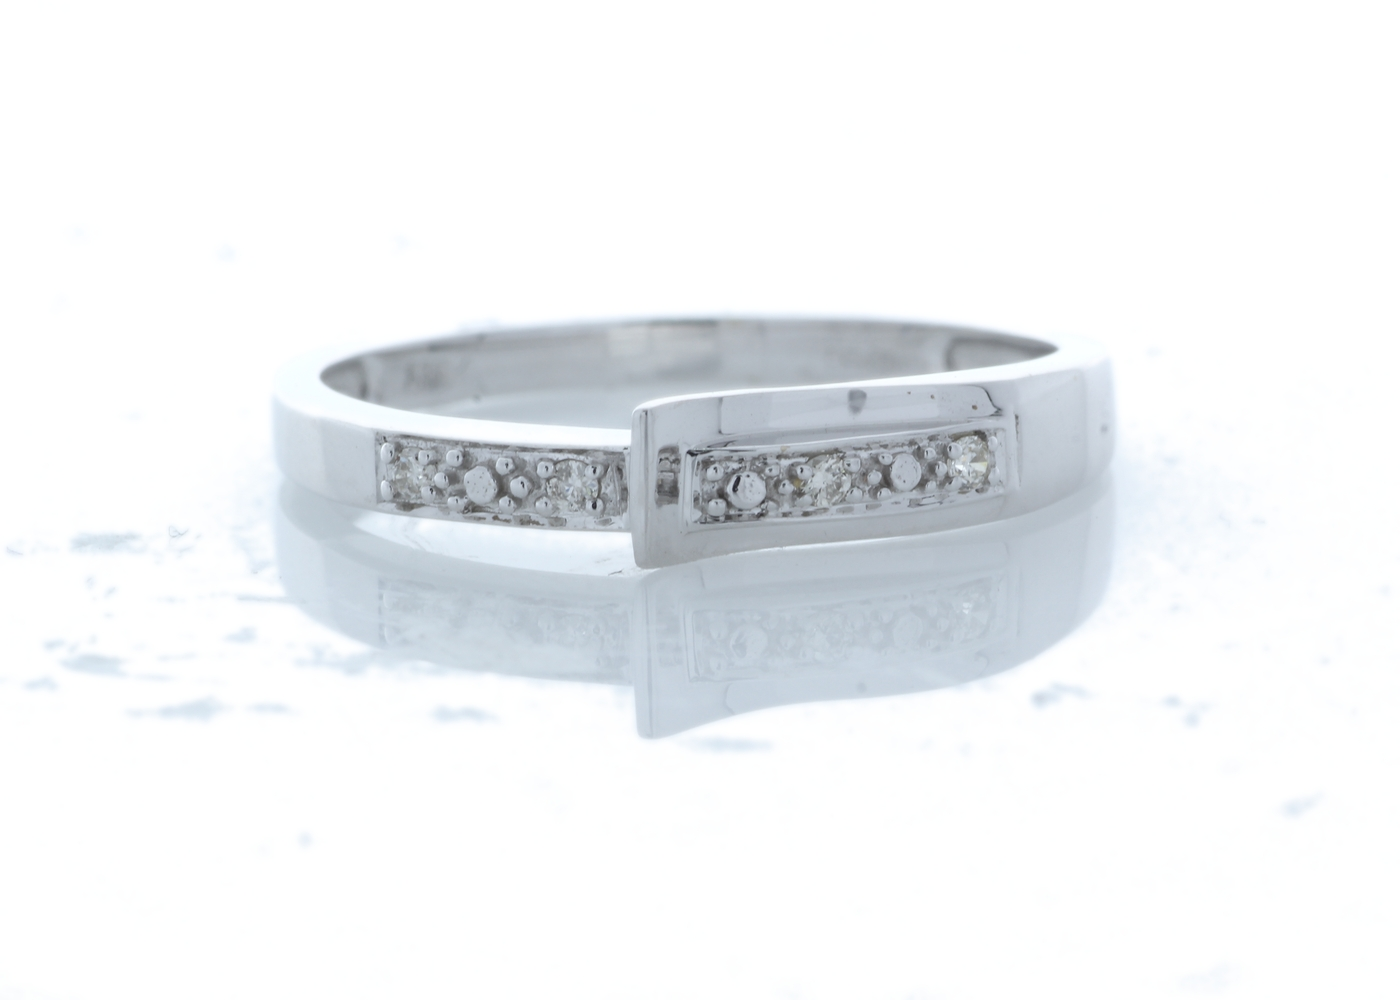 Lot 57 - 9ct White Gold Other Ring 0.04 Carats